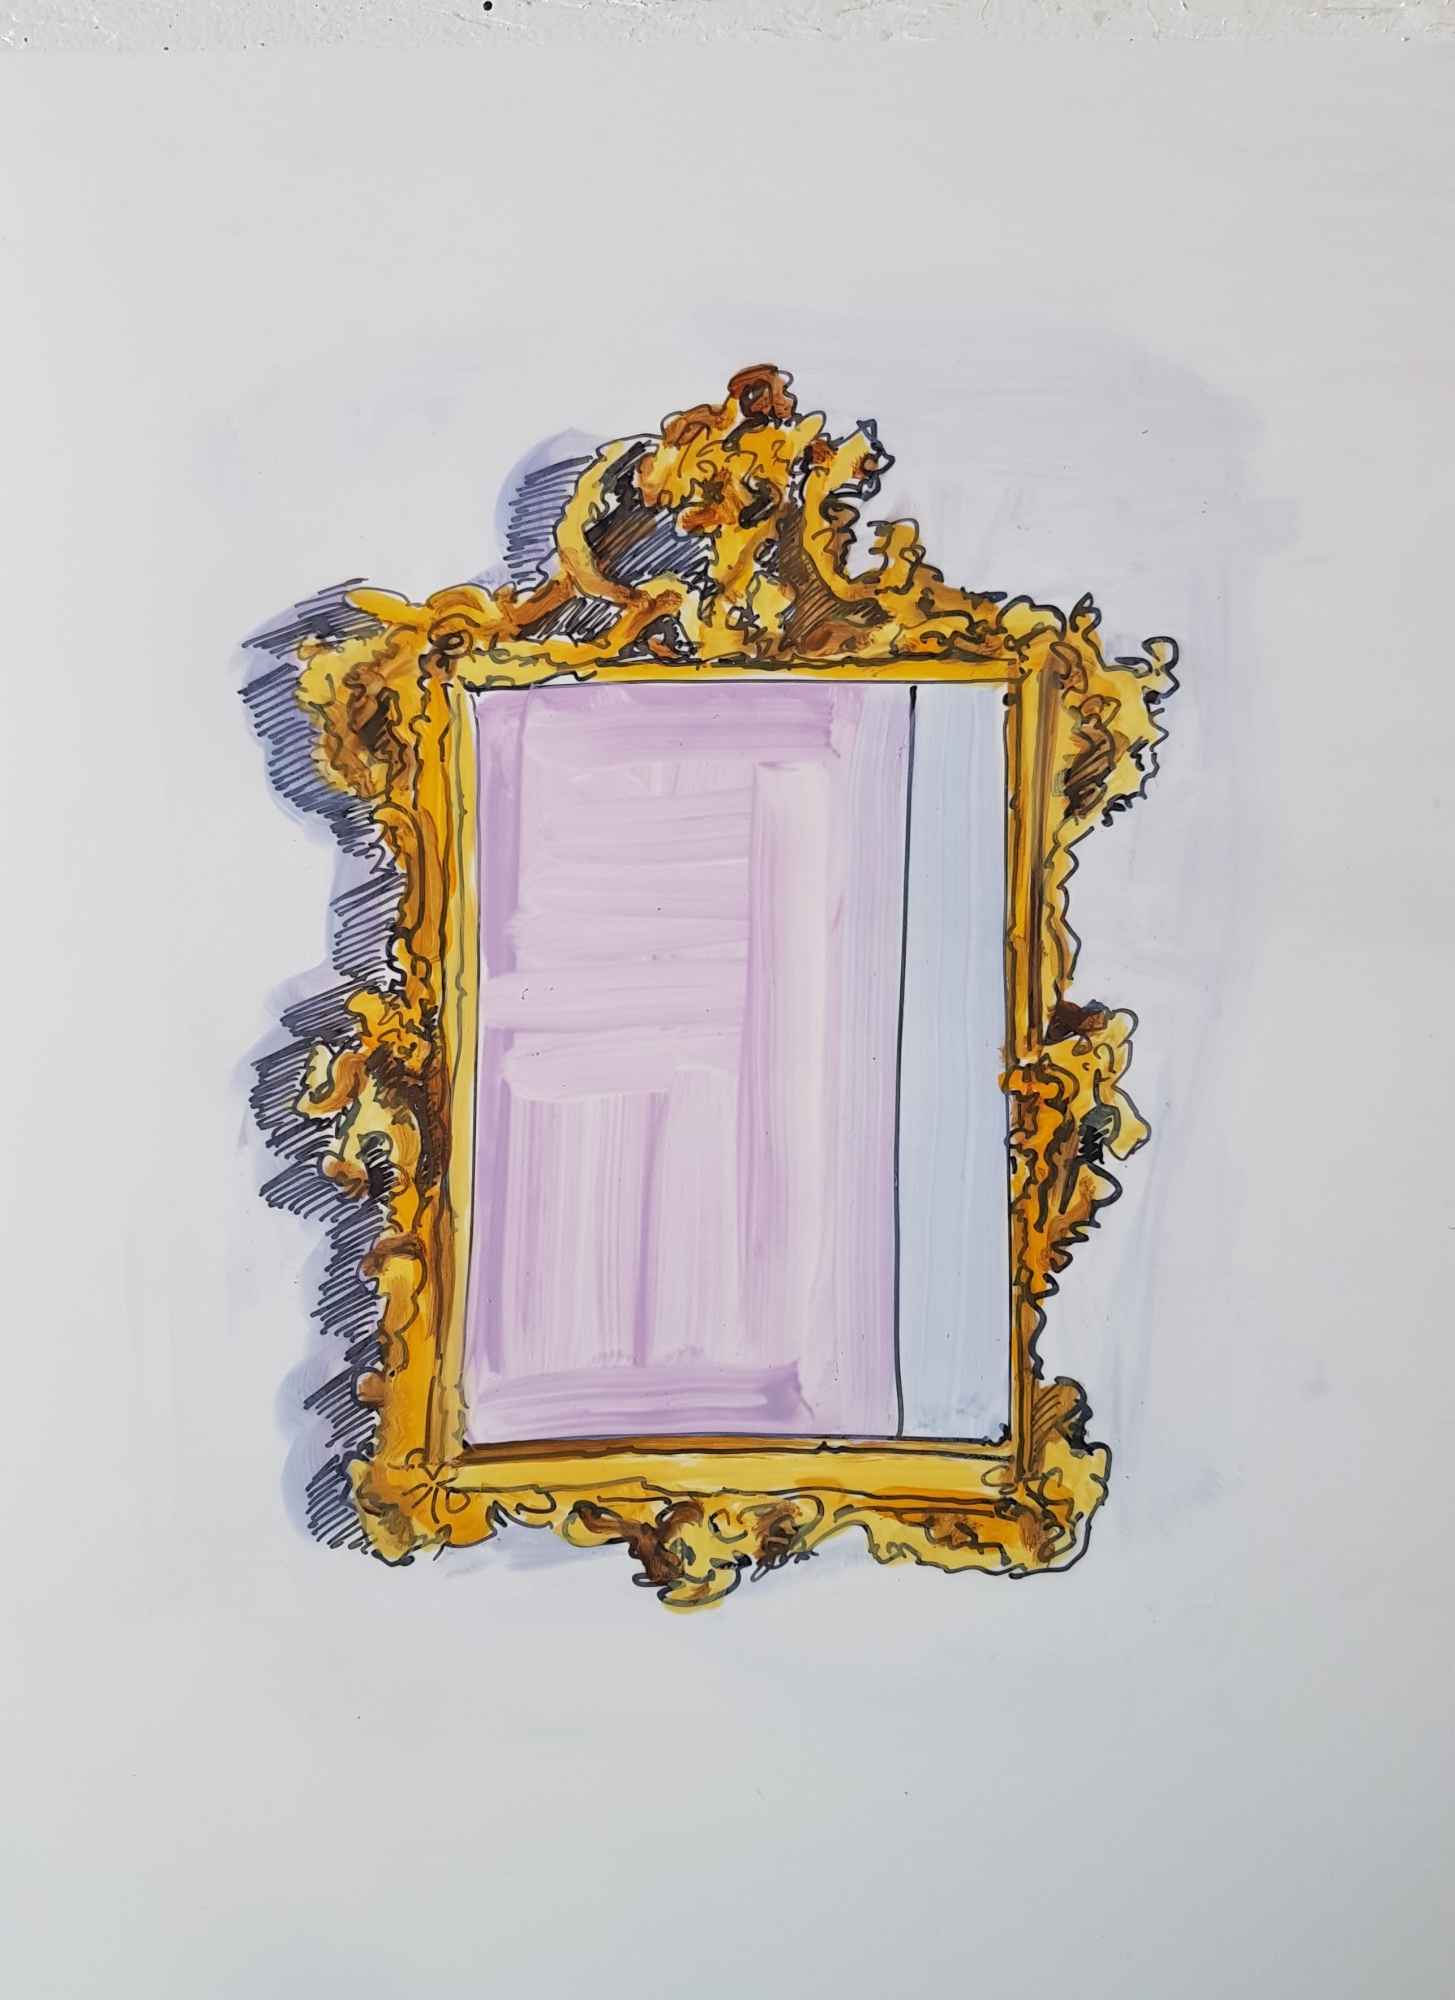 Antique Mirror 3 by Jennifer Wardle